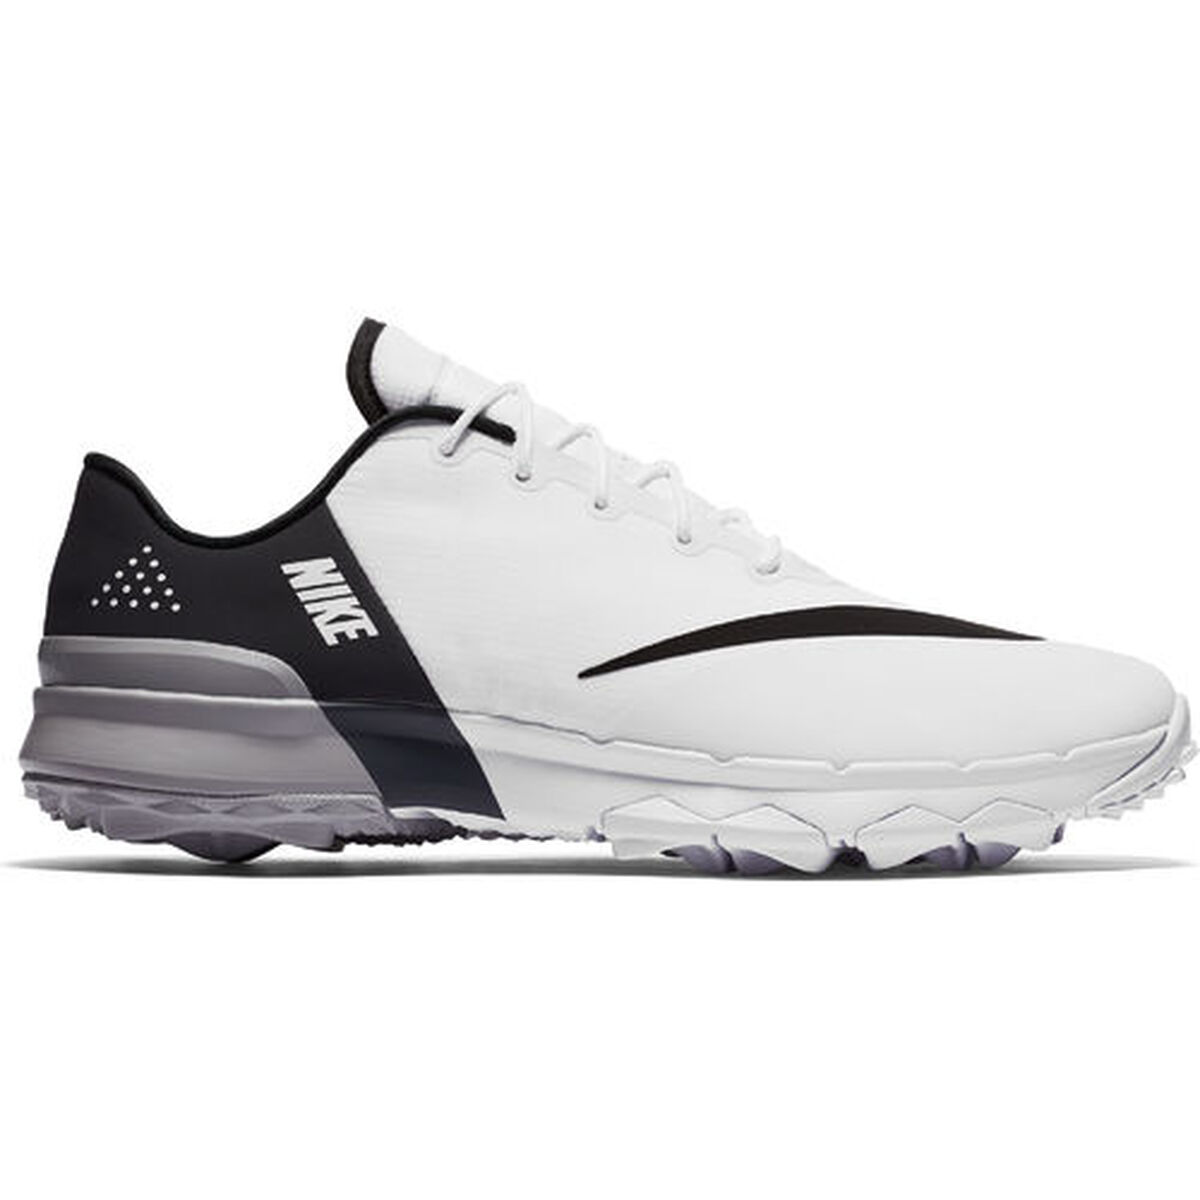 201d35814fdc9 Nike FI Flex Men's Golf Shoe - White/Black | PGA TOUR Superstore